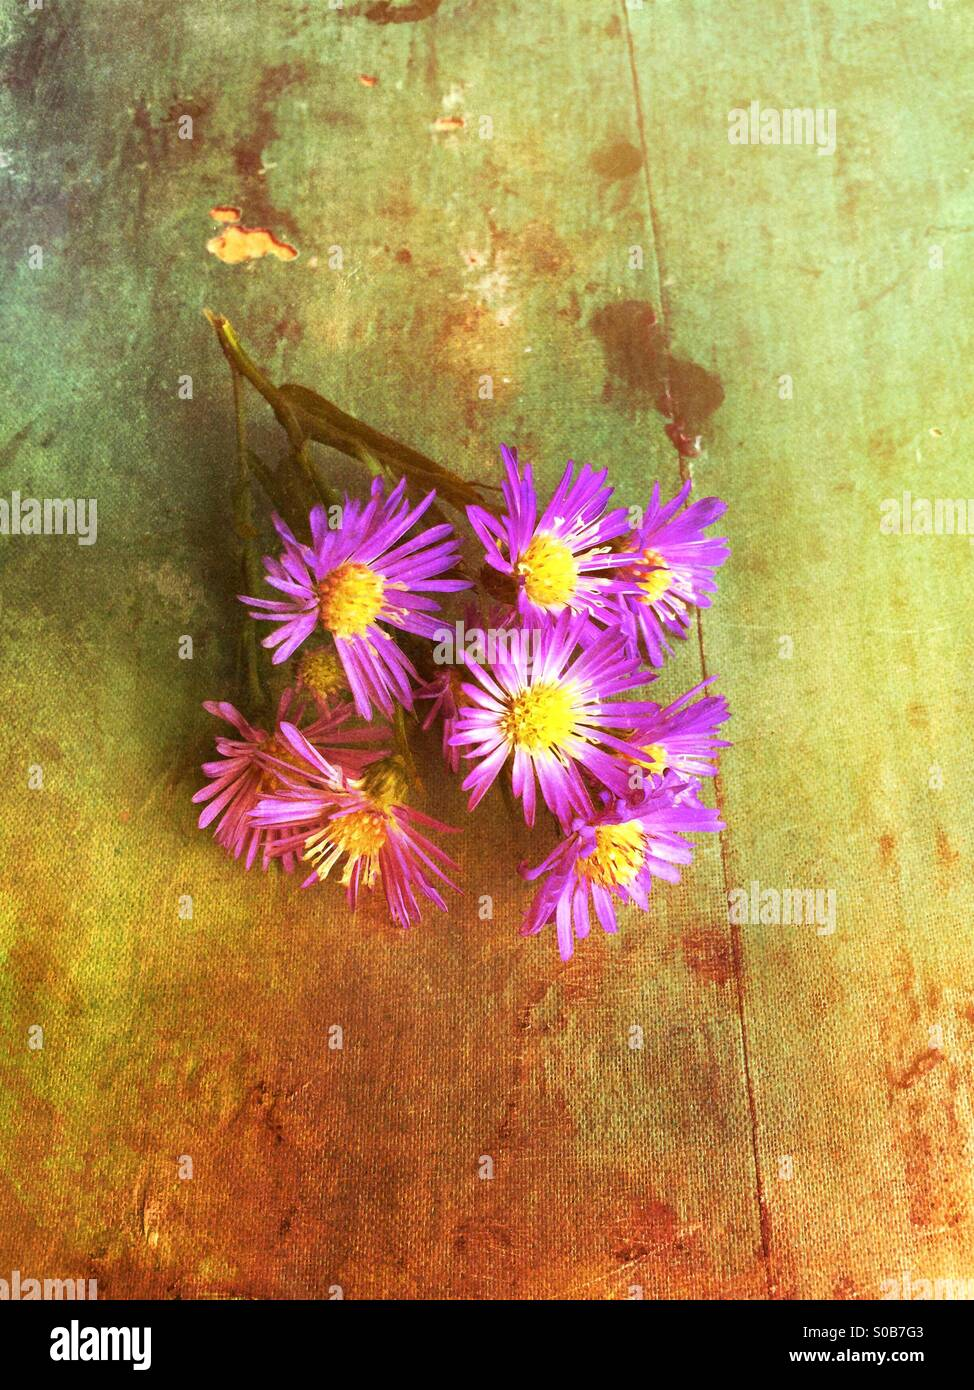 Gerbera violet sur un fond grunge Photo Stock